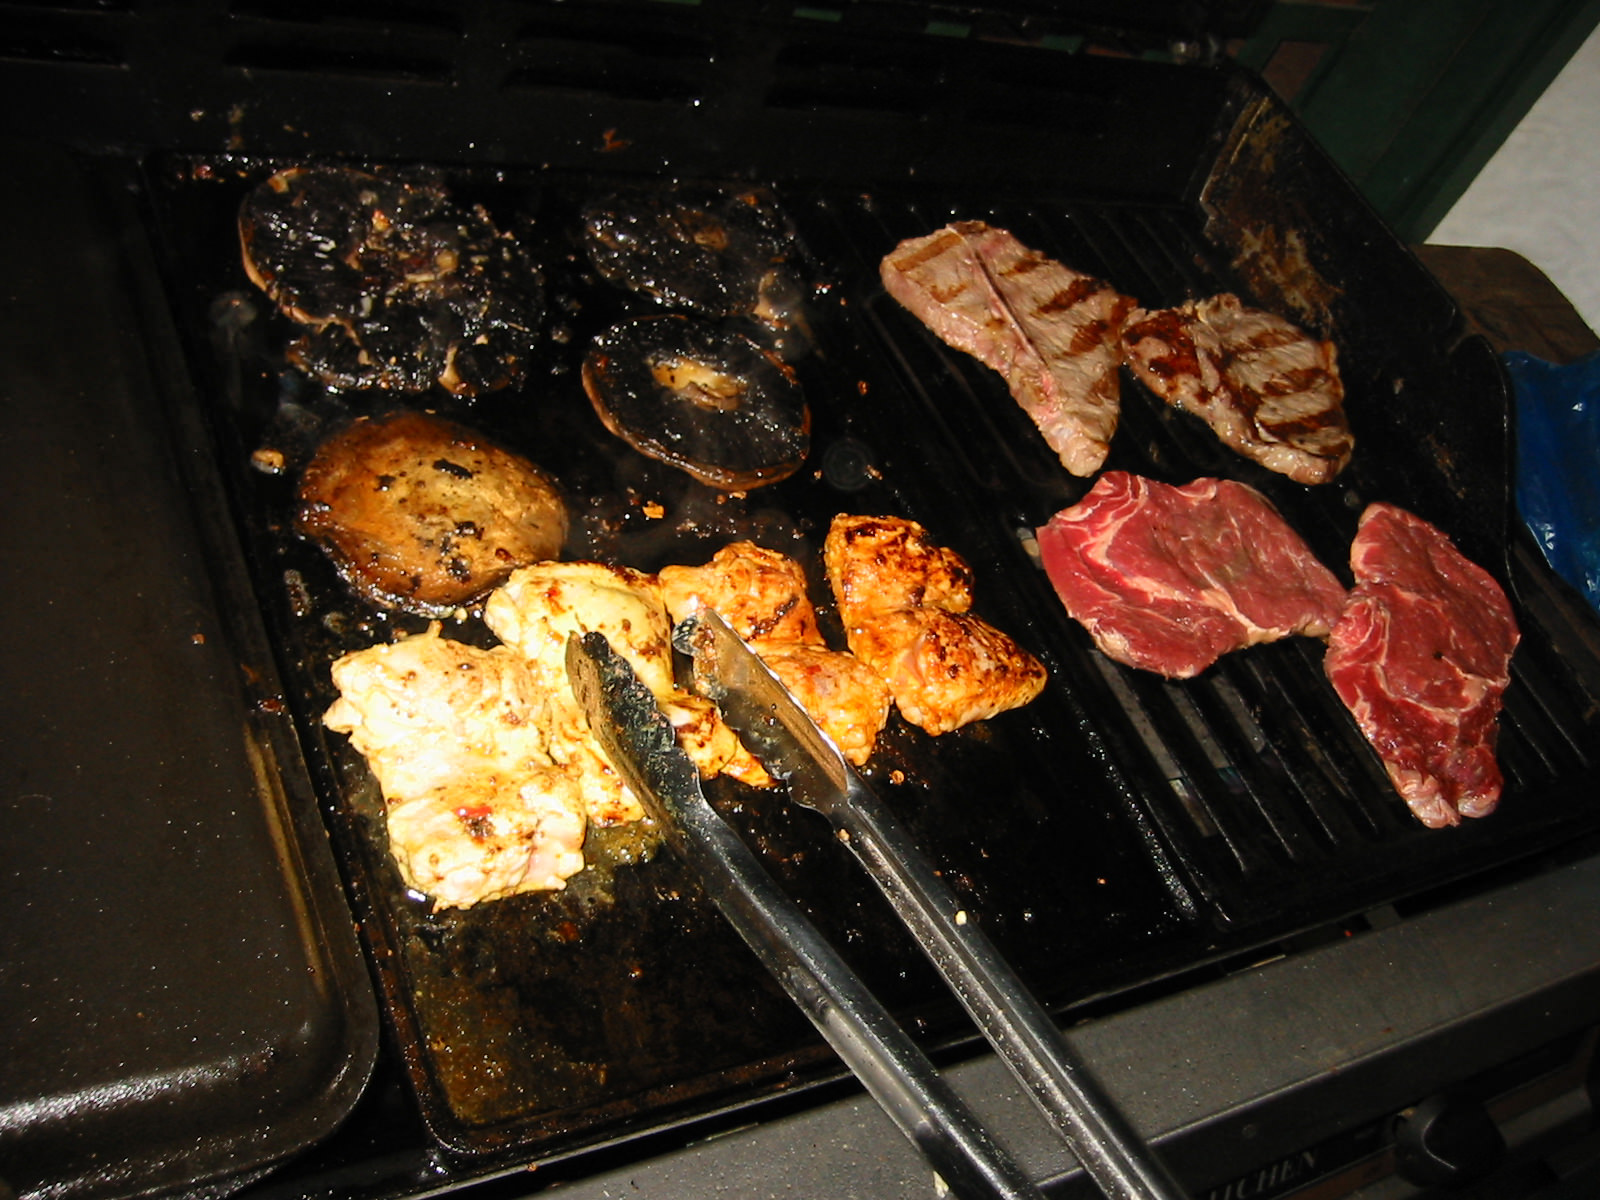 Mushrooms, chicken and steak on the barbie